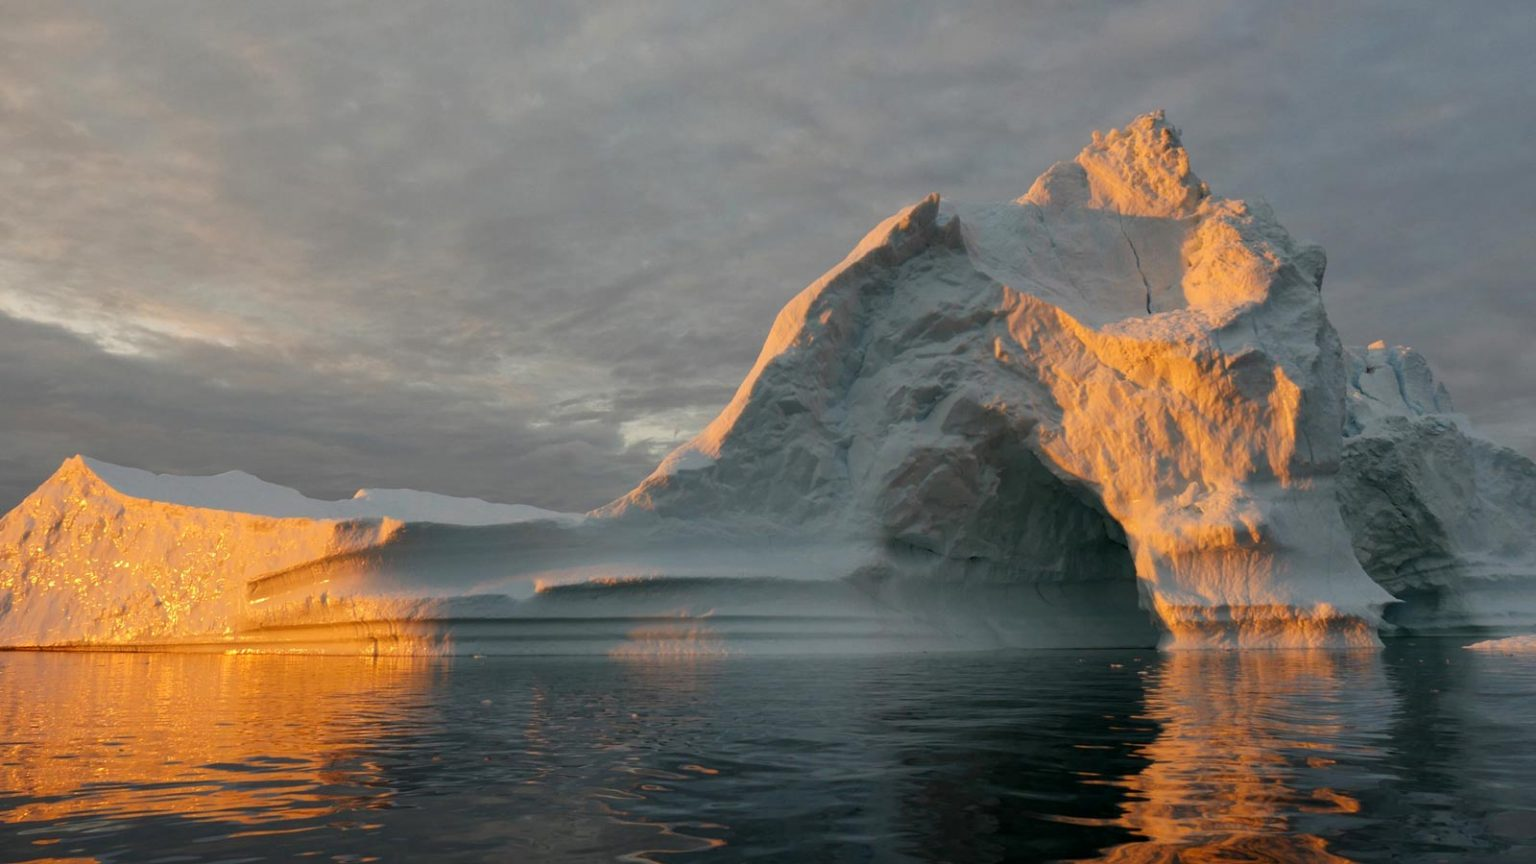 586 billion tons of ice melted in Greenland during 2019; new record